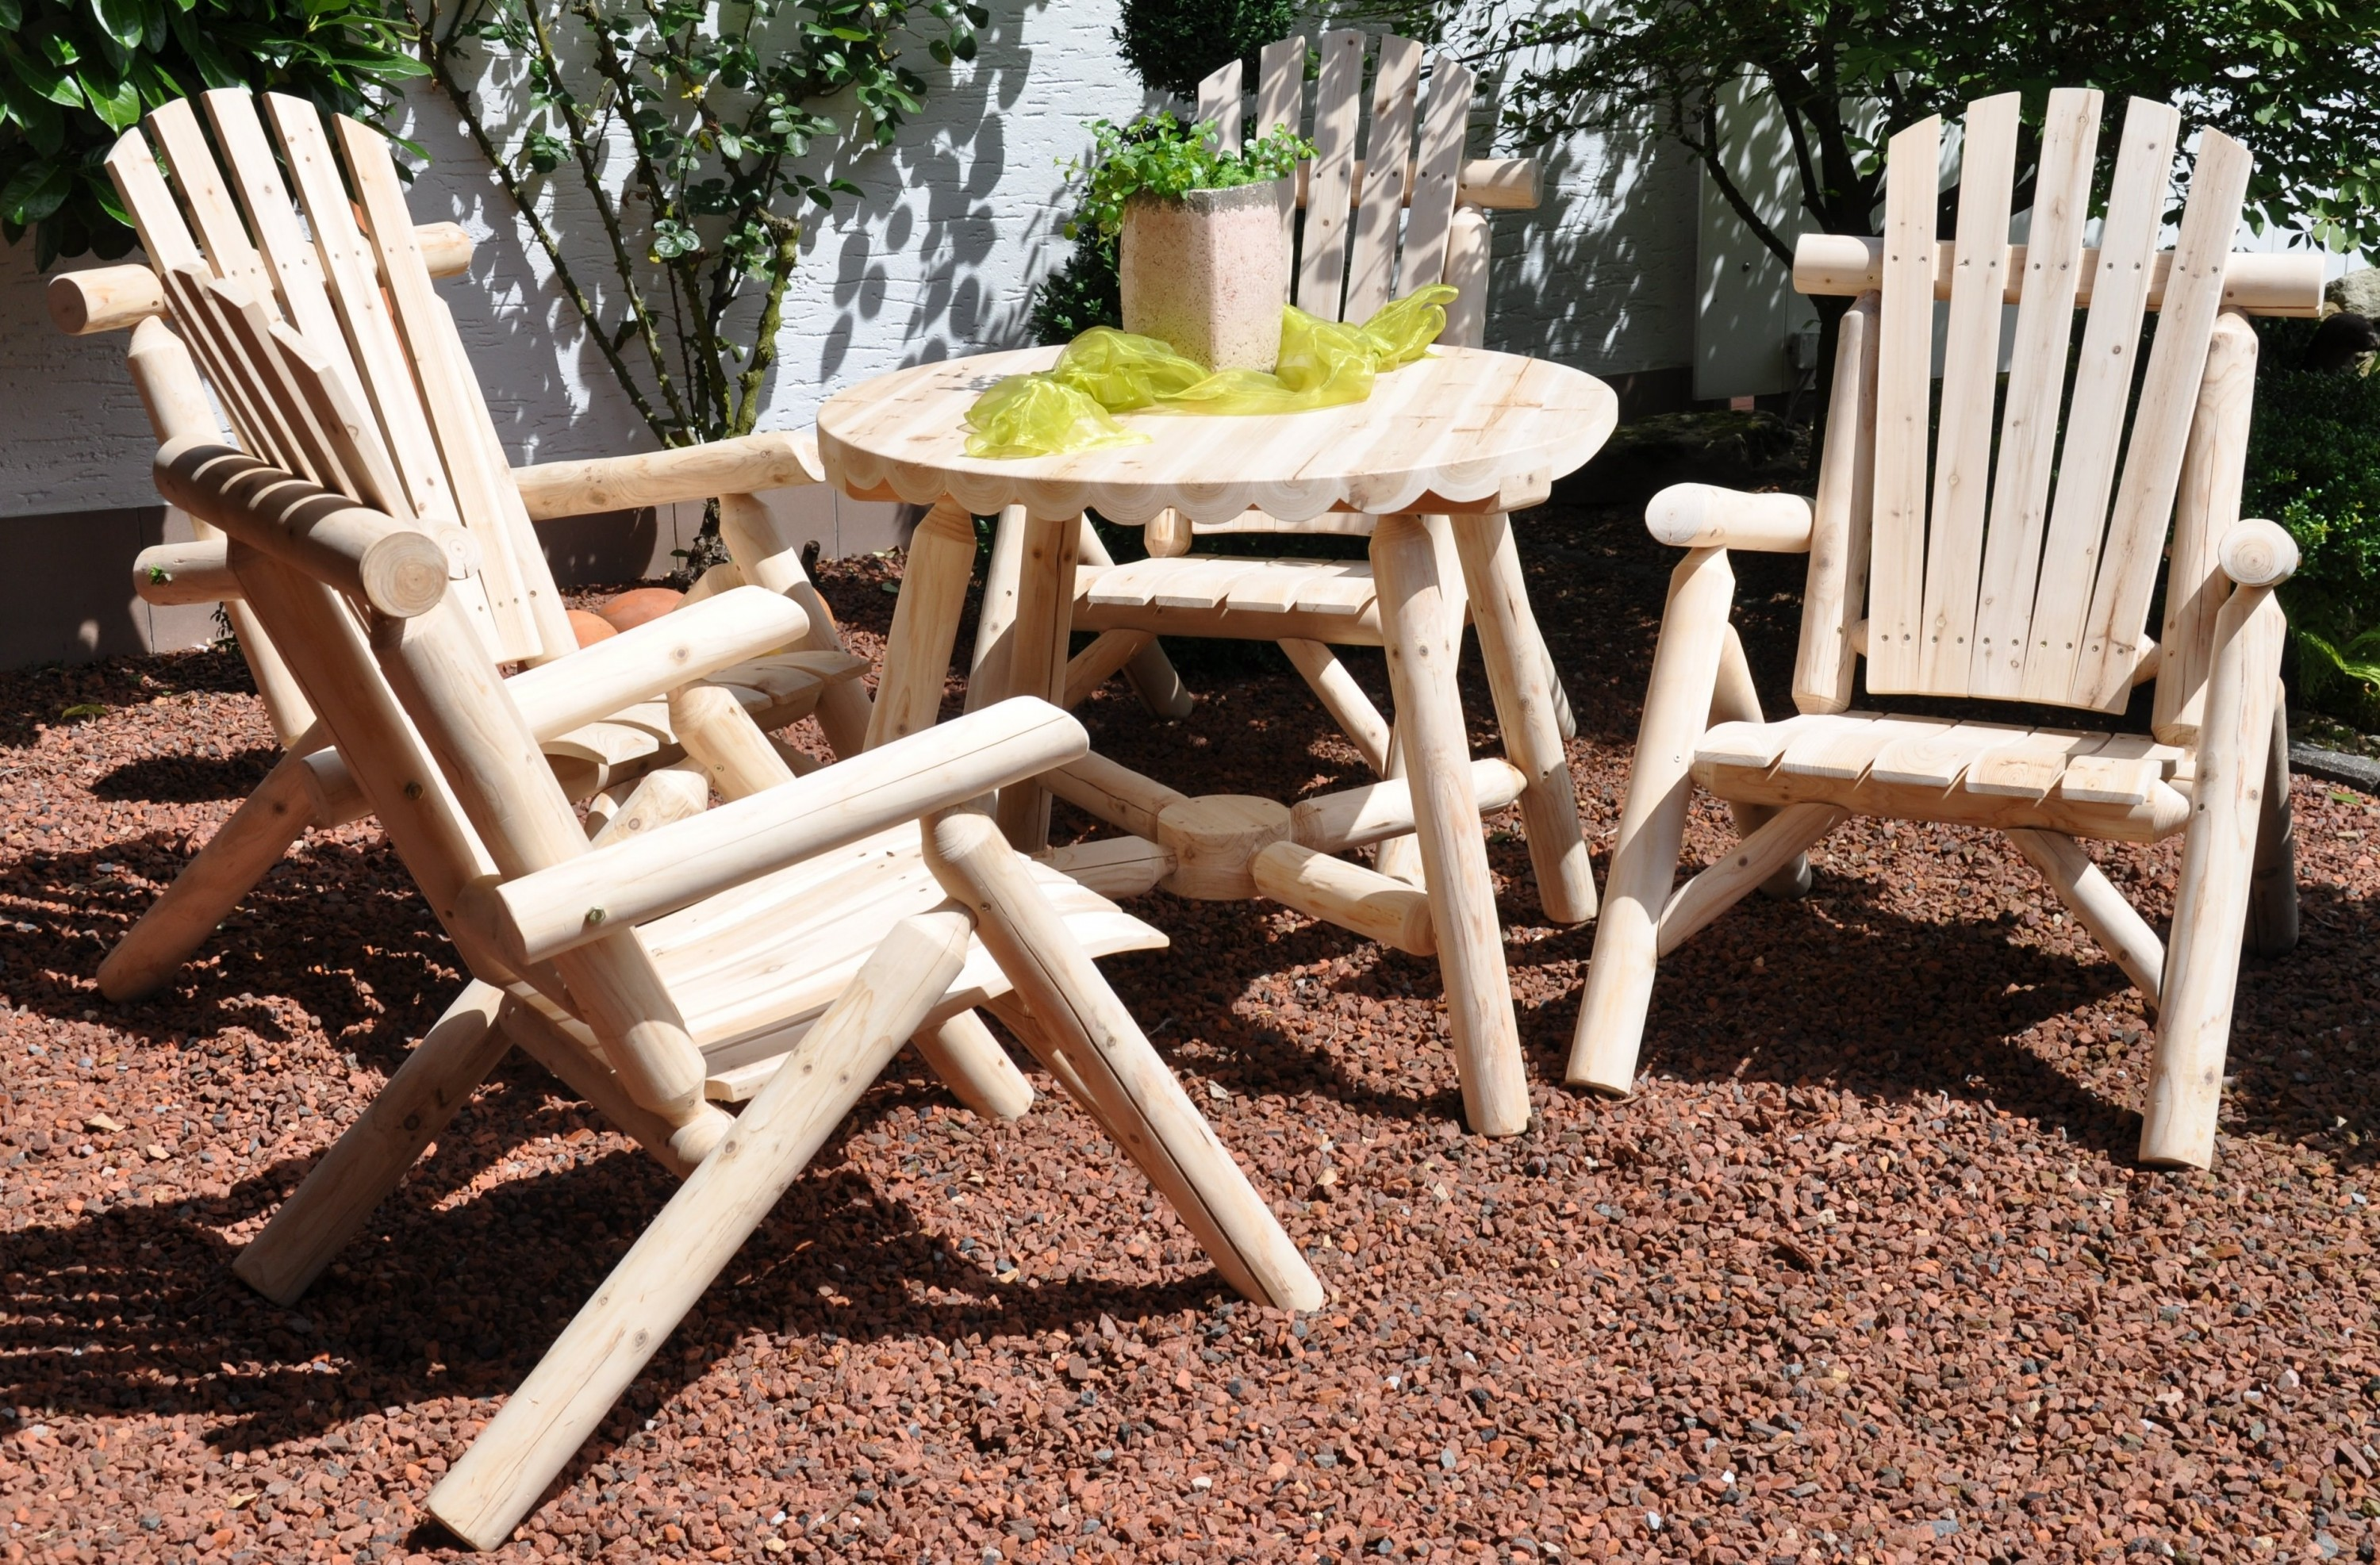 leco massiv holz tisch 88cm gartentisch garten m bel rundholz esstisch ebay. Black Bedroom Furniture Sets. Home Design Ideas